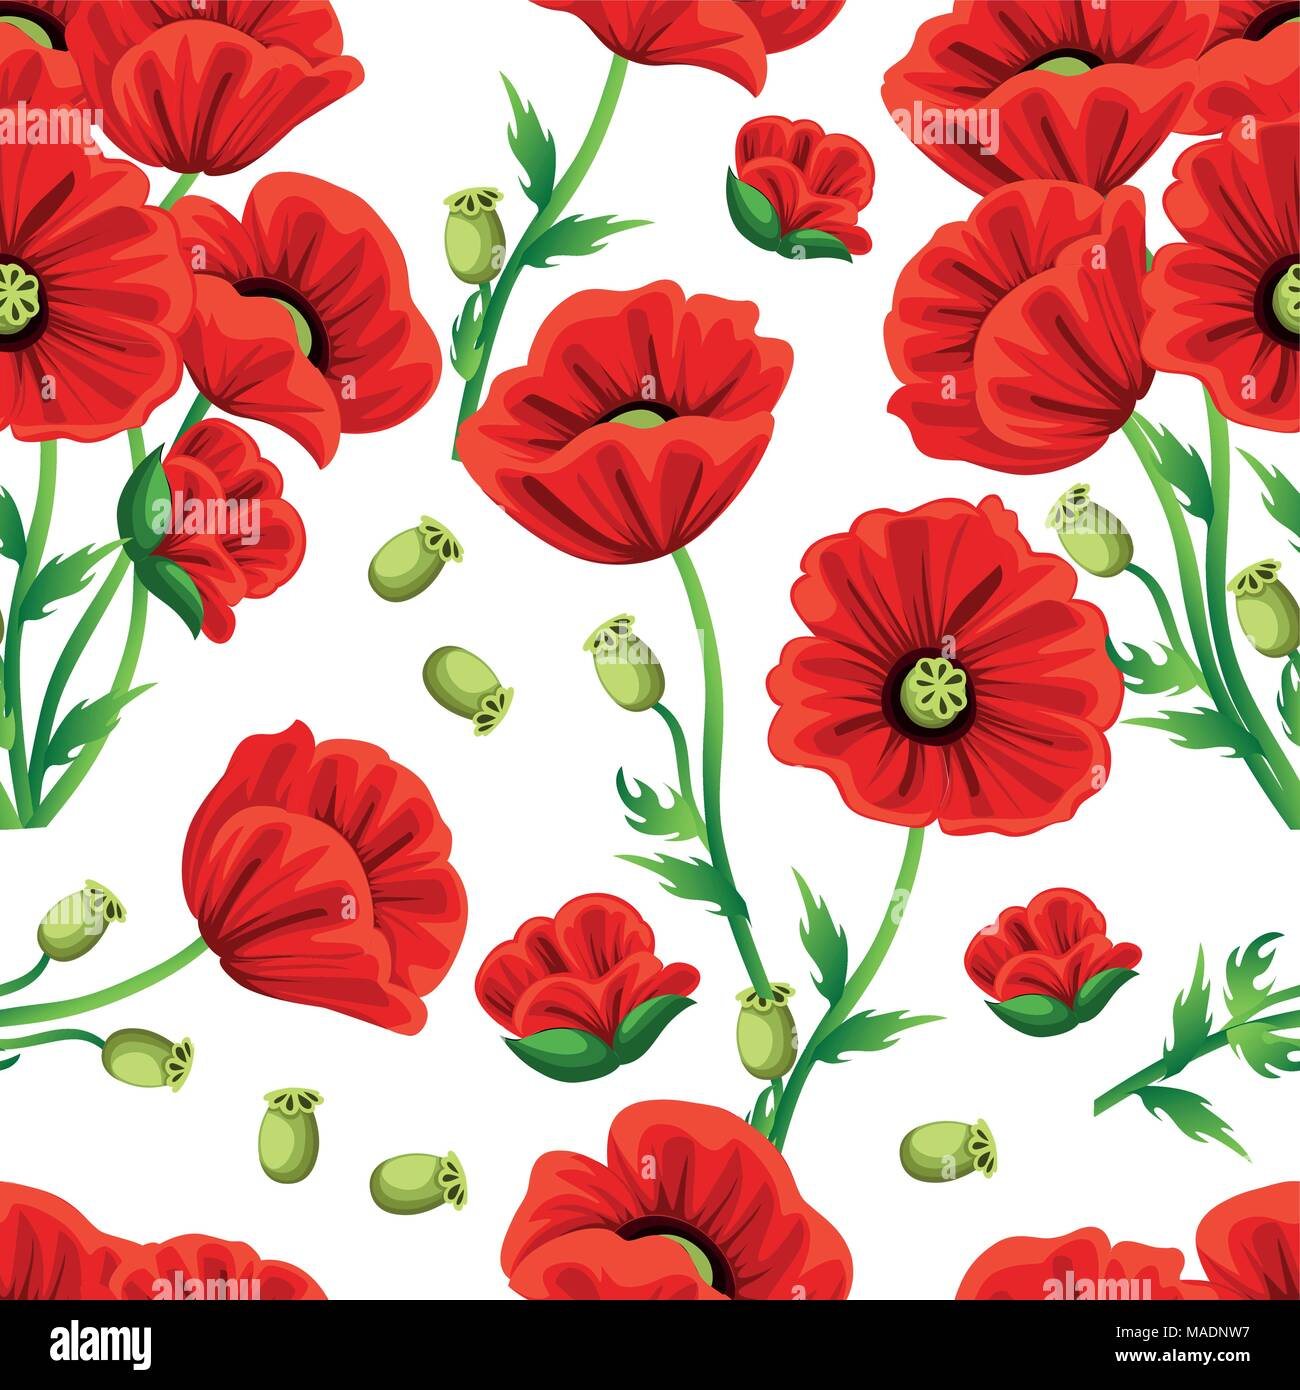 Seamless Pattern Red Poppy Flower With Green Leaves Vector